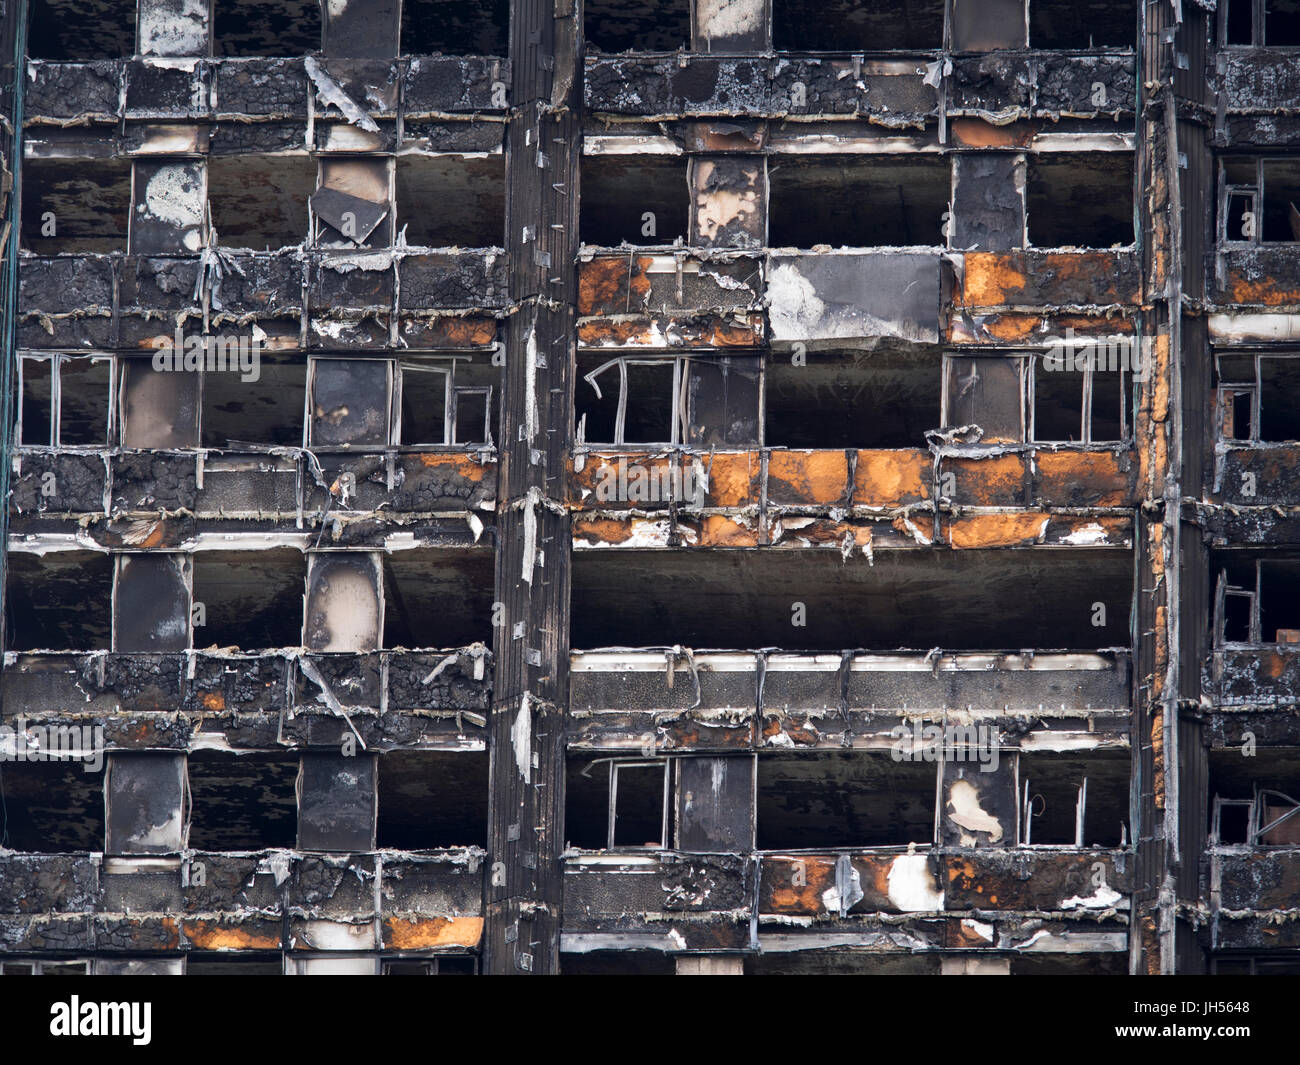 London, UK - Jul 4, 2017: Close up view of the Grenfell Tower block of council flats in which at least 80 people - Stock Image